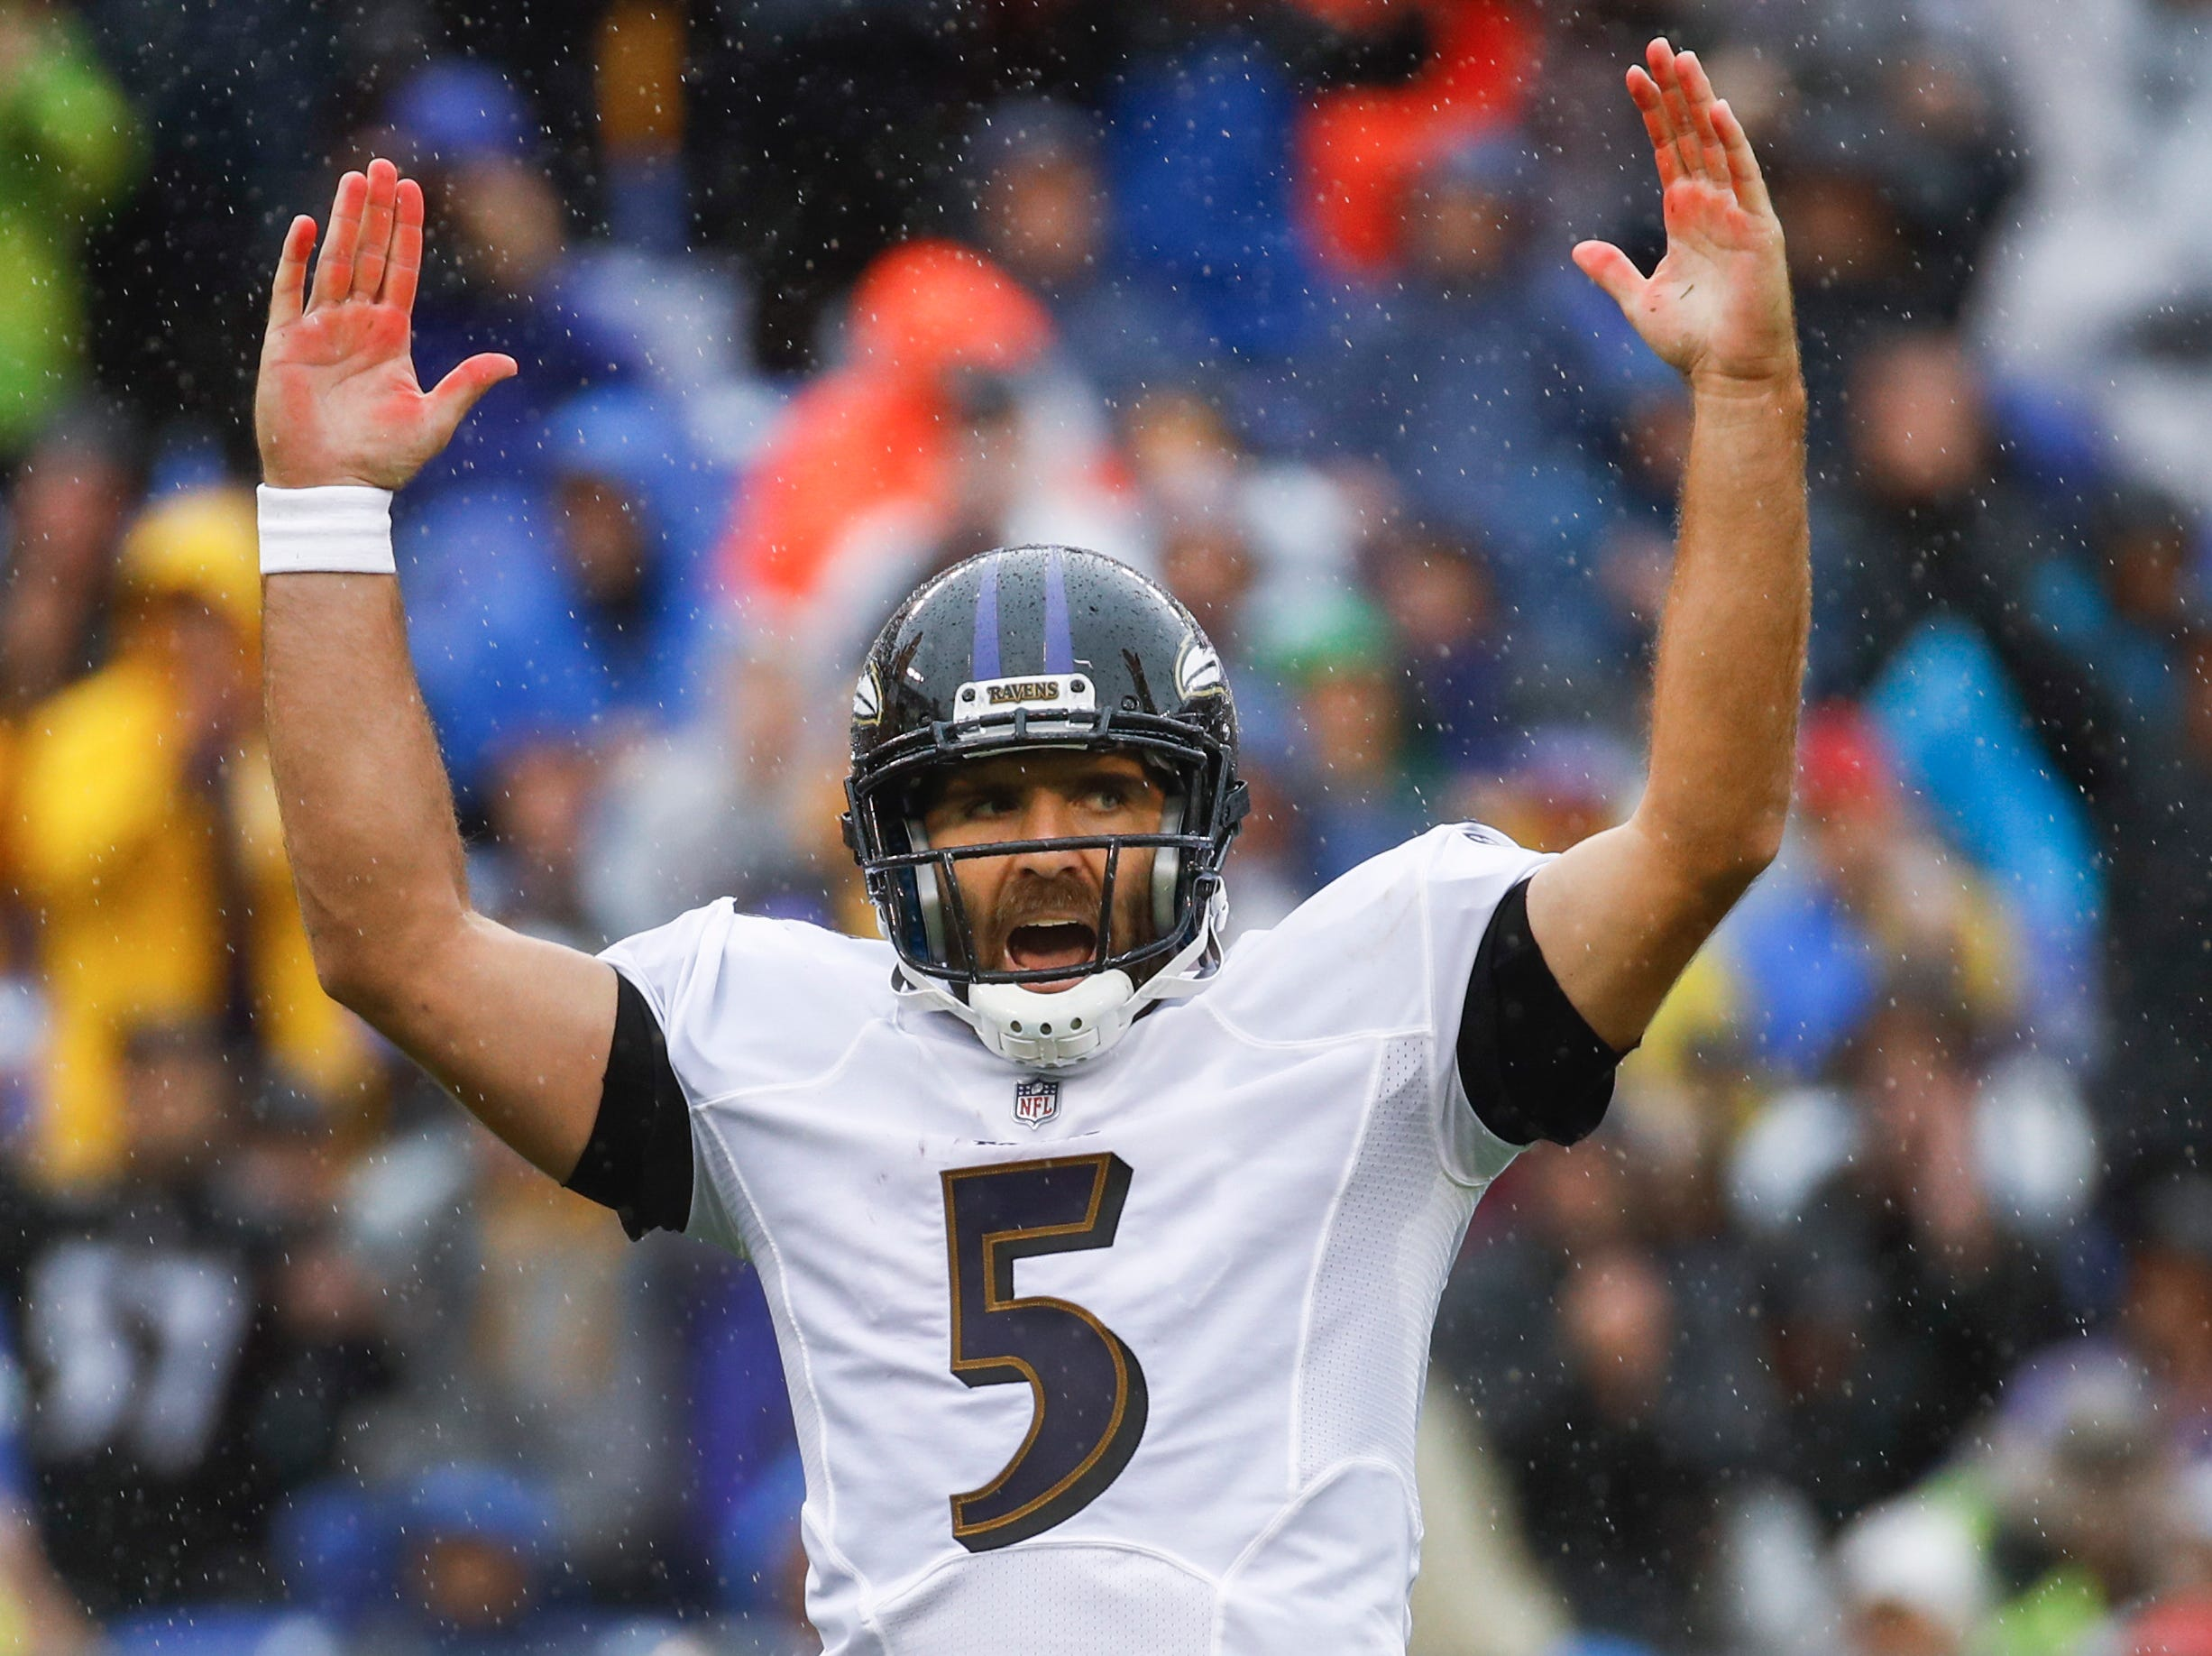 Baltimore Ravens quarterback Joe Flacco (5) celebrates his touchdown pass to wide receiver John Brown during the first half of an NFL football game against the Buffalo Bills, Sunday, Sept. 9, 2018 in Baltimore. (AP Photo/Patrick Semansky)